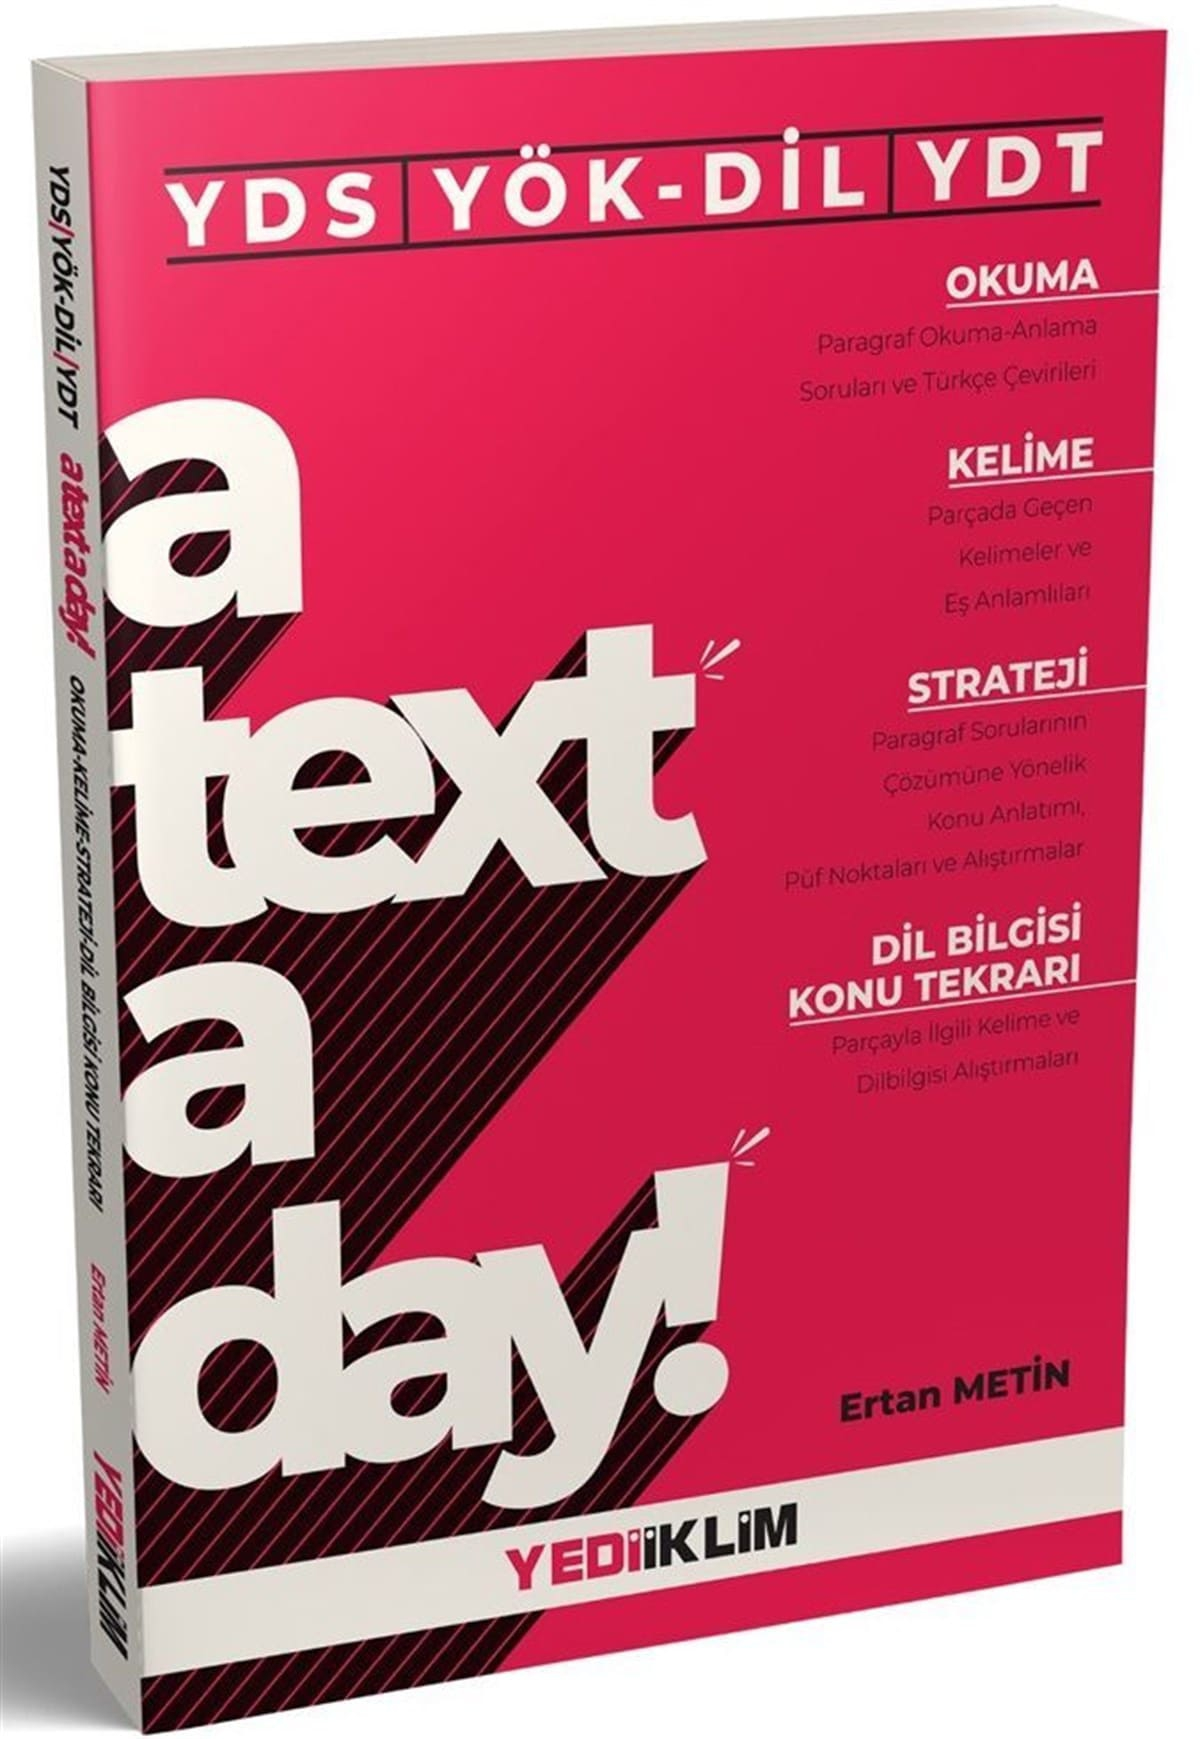 YDS YÖKDİL YDT A Text A Day Okuma